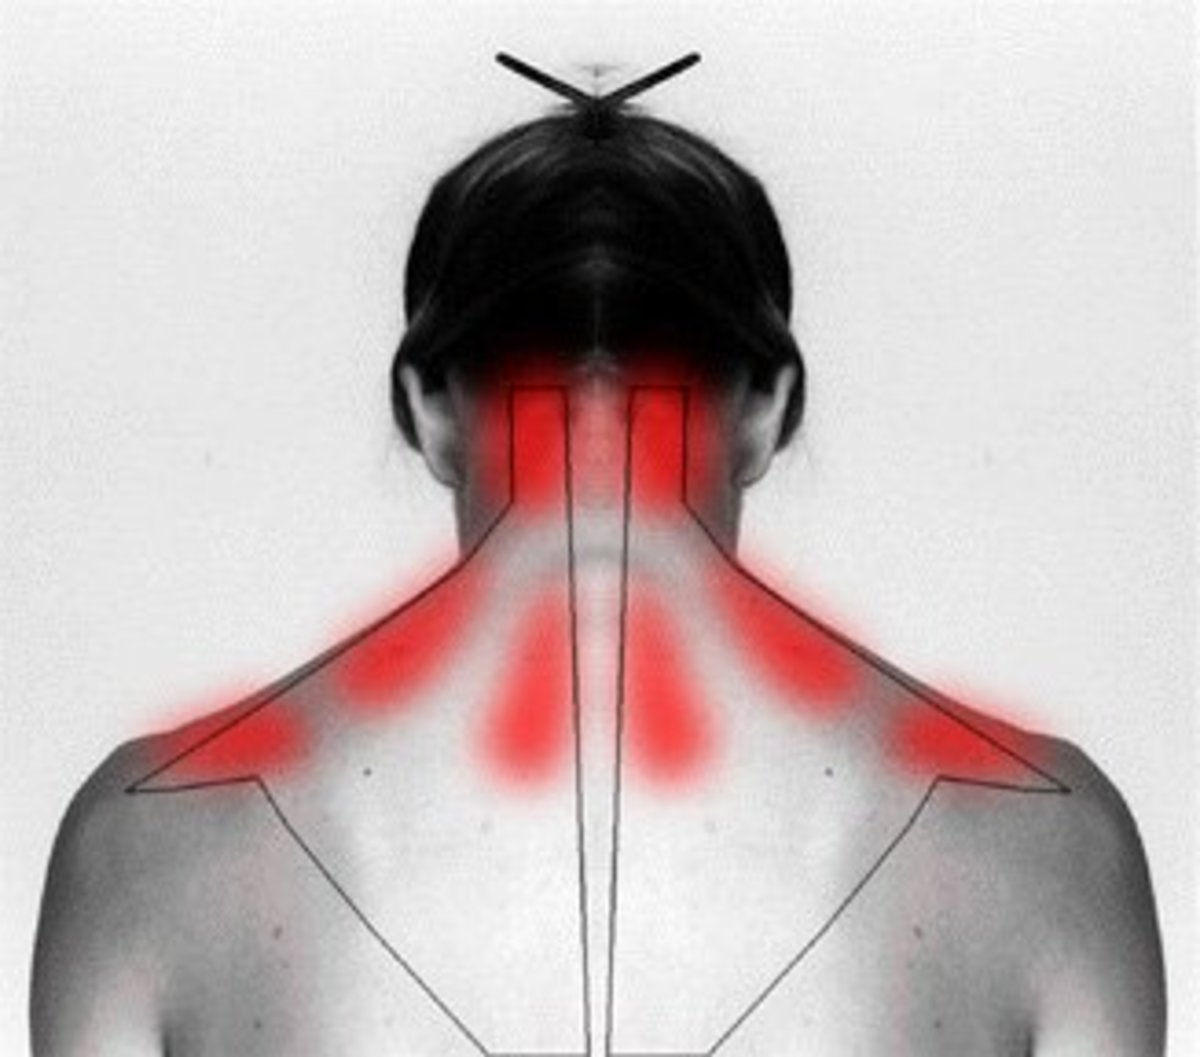 remedies for aches and pains